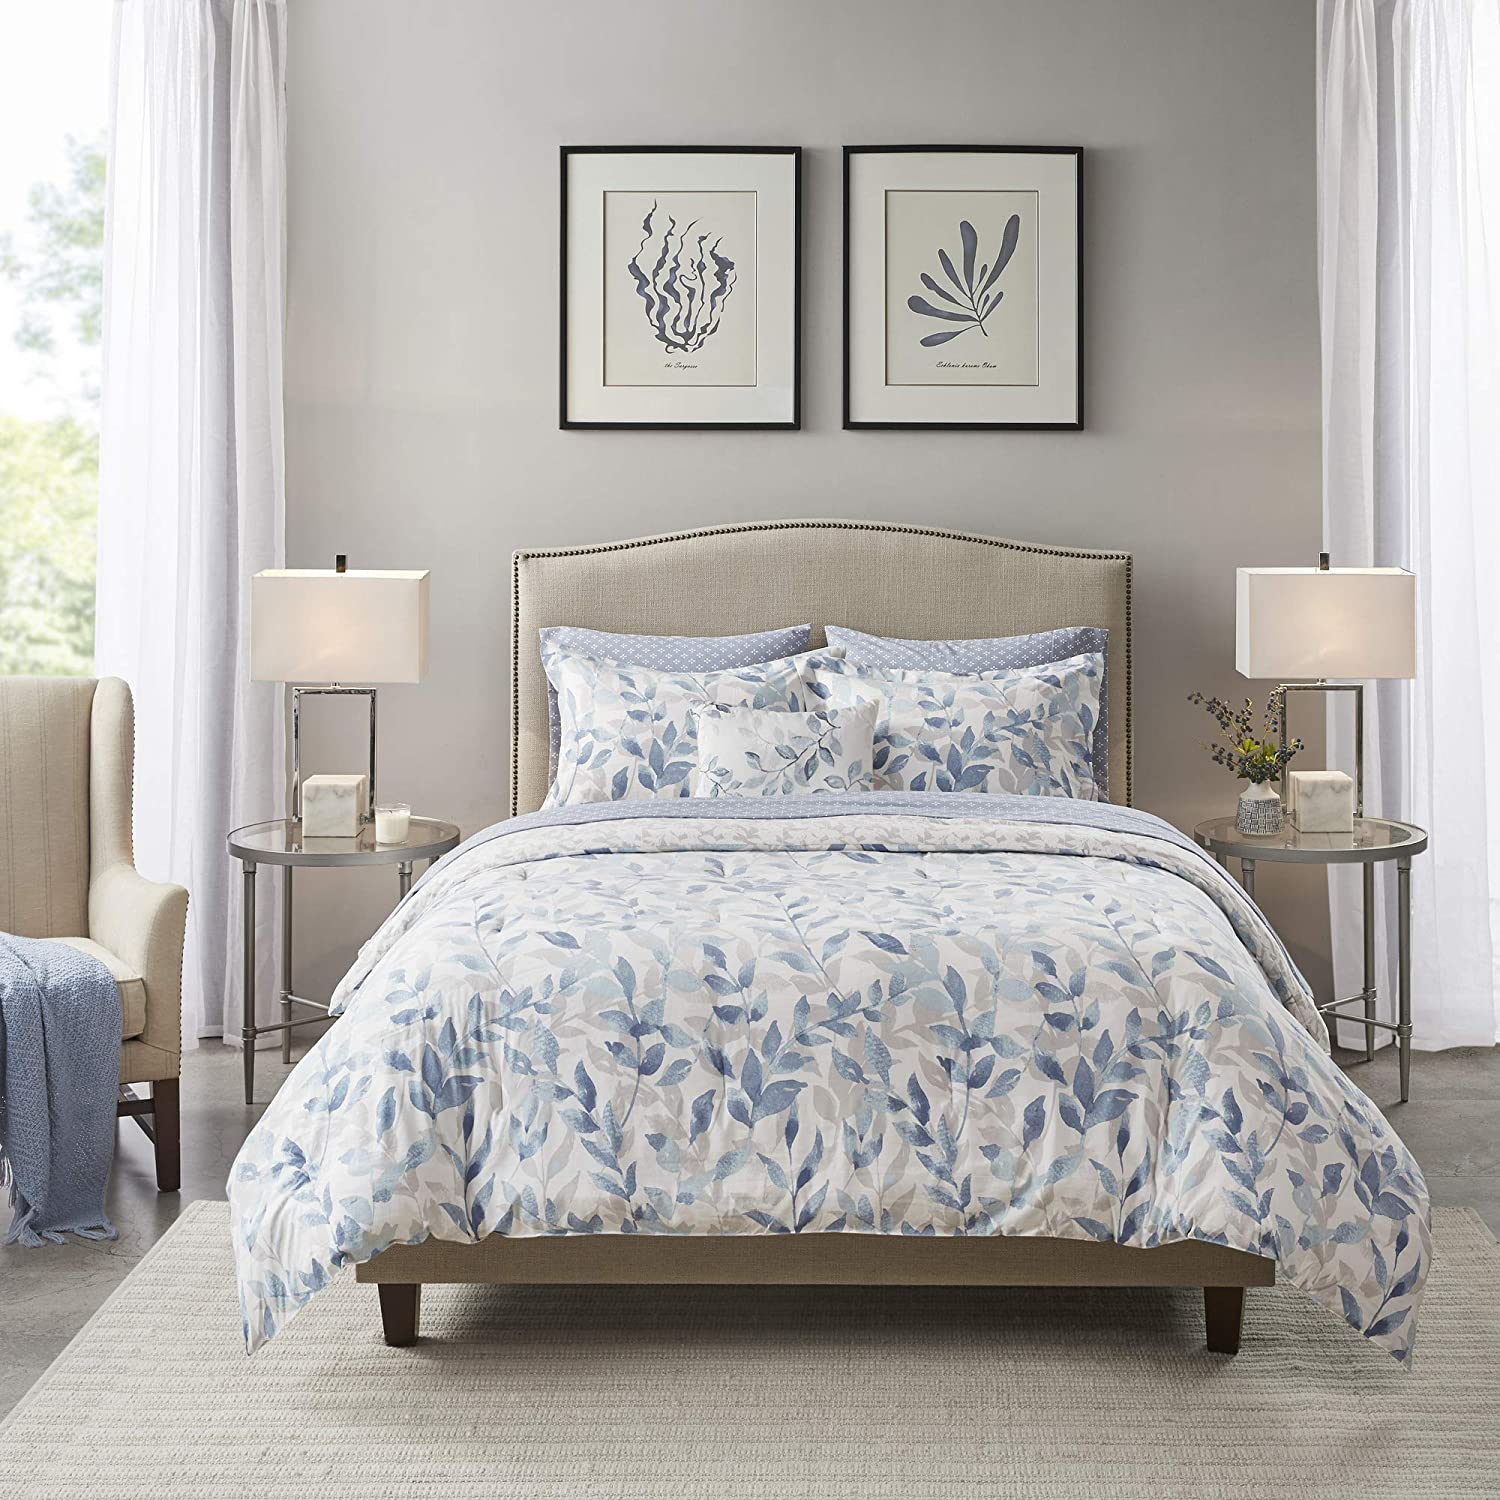 Madison Park Essentials Sofia Bed in a Bag Reversible Comforter with Complete Sheet Set-Modern Botanical Print All Season Cover, Shams, Cal King(104